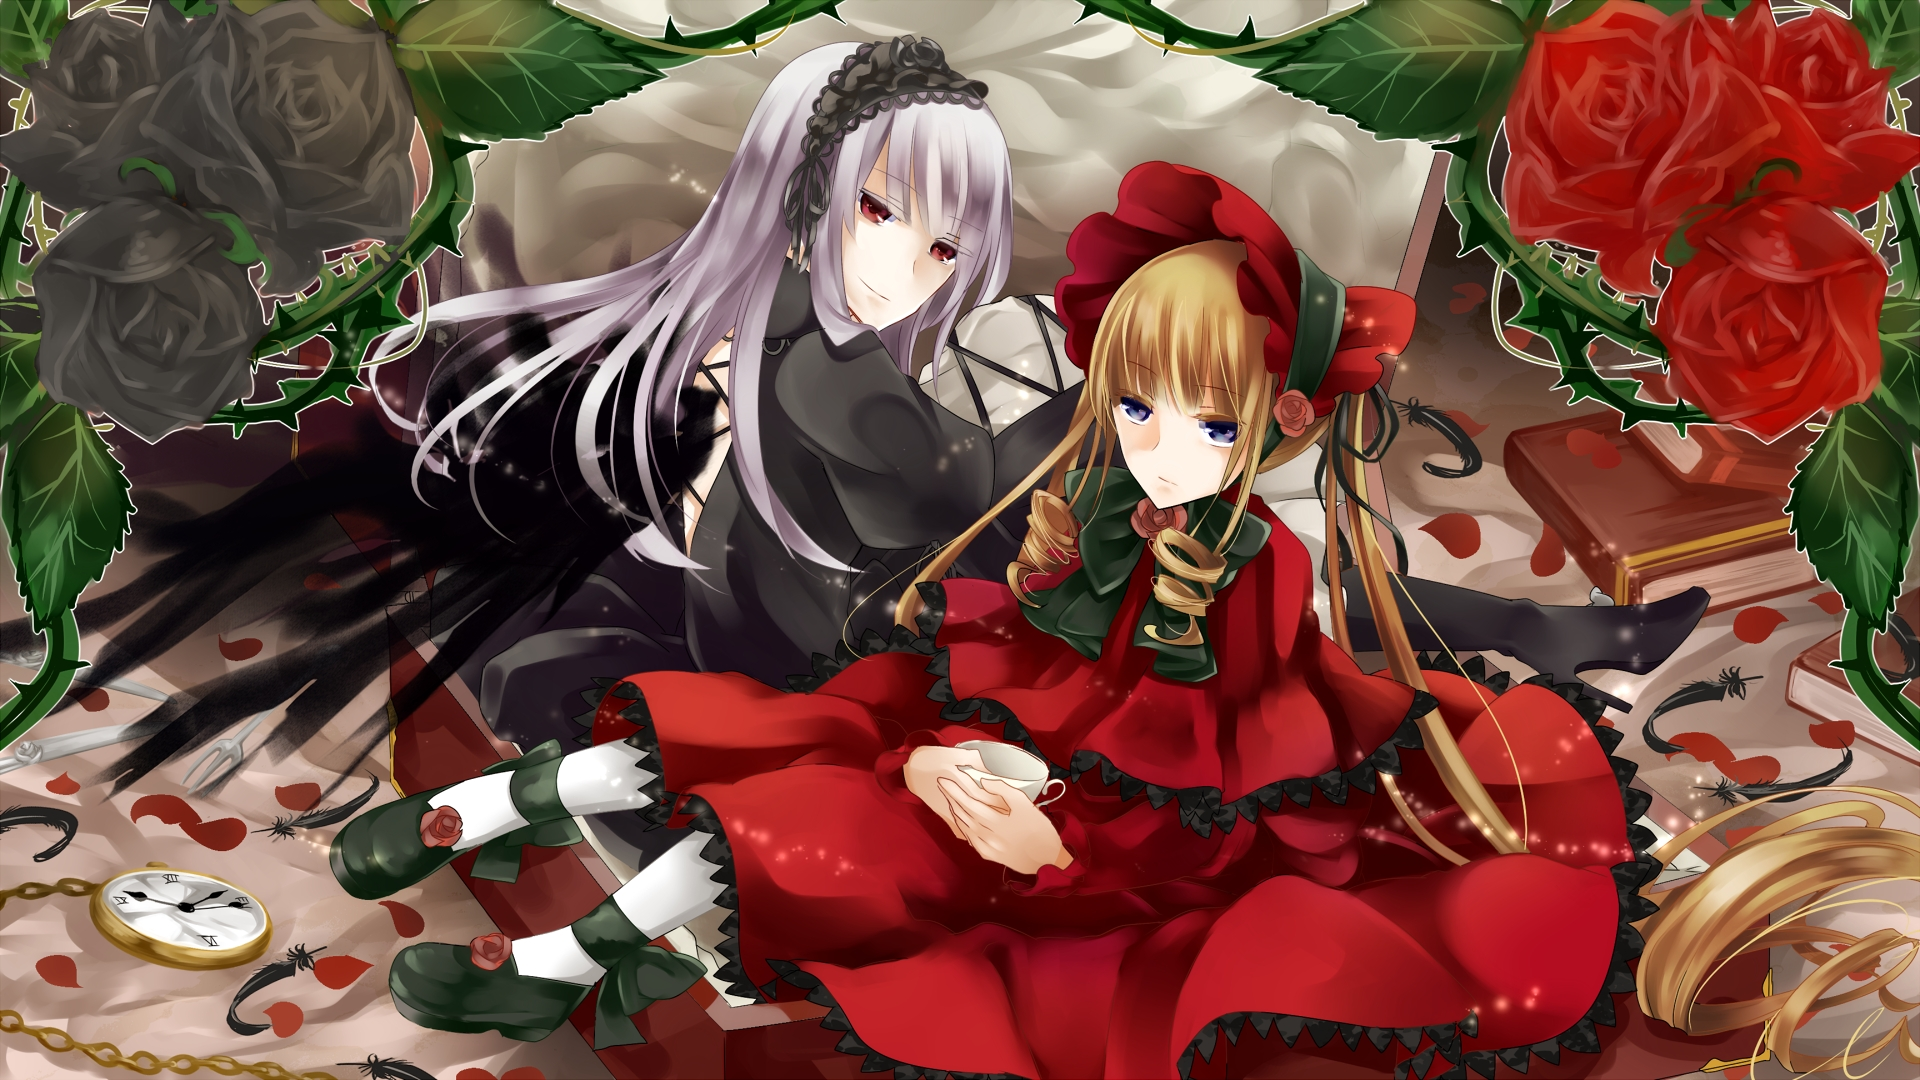 Rozen Maiden Peach Pit Hd Wallpaper 1611606 Zerochan